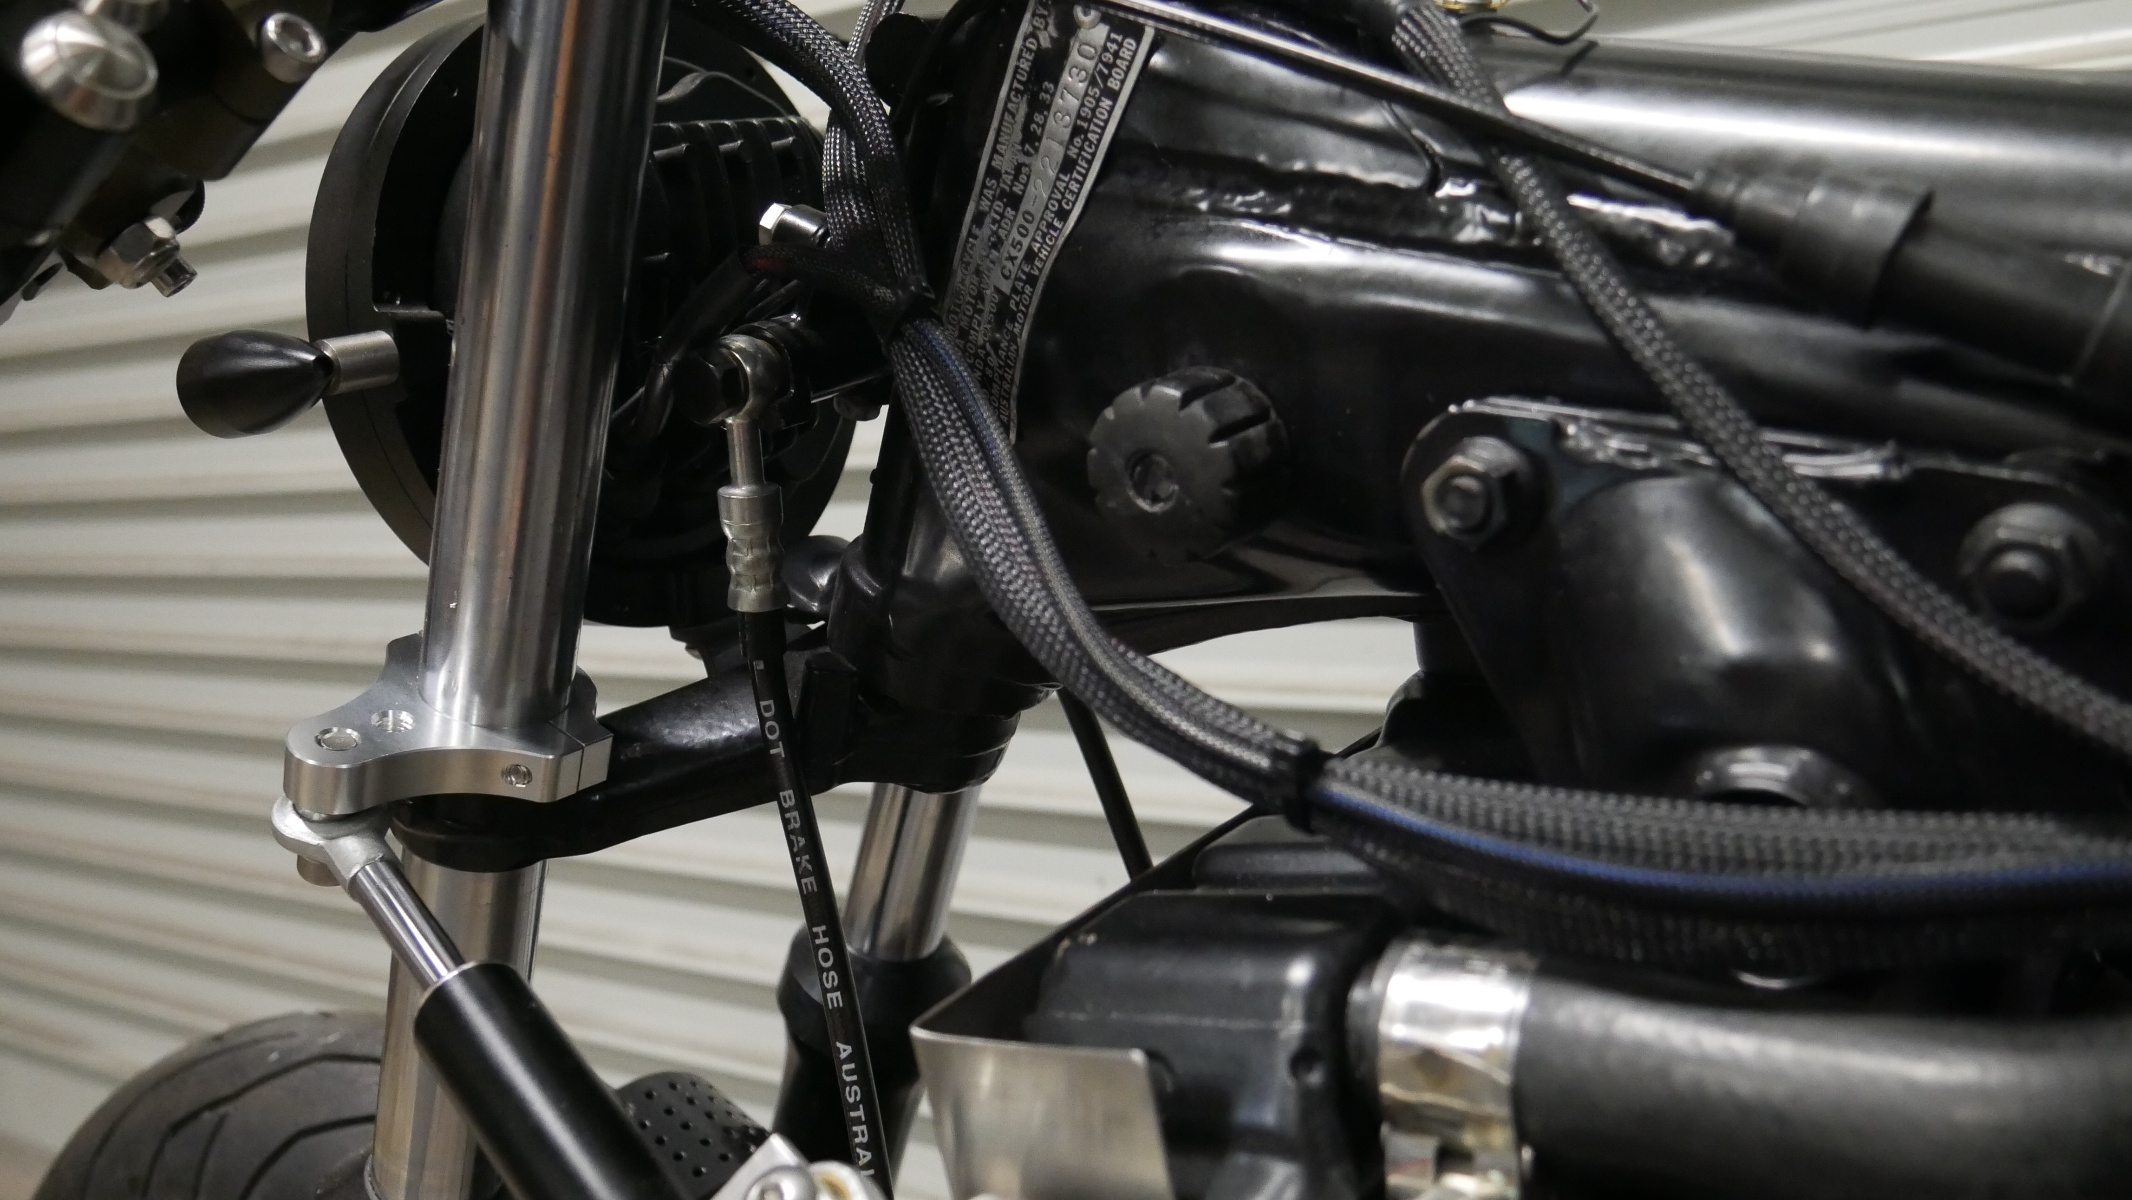 Top 5 Wiring Mistakes To Avoid When Your Custom Bike Gn250 Diagram Motorcycle